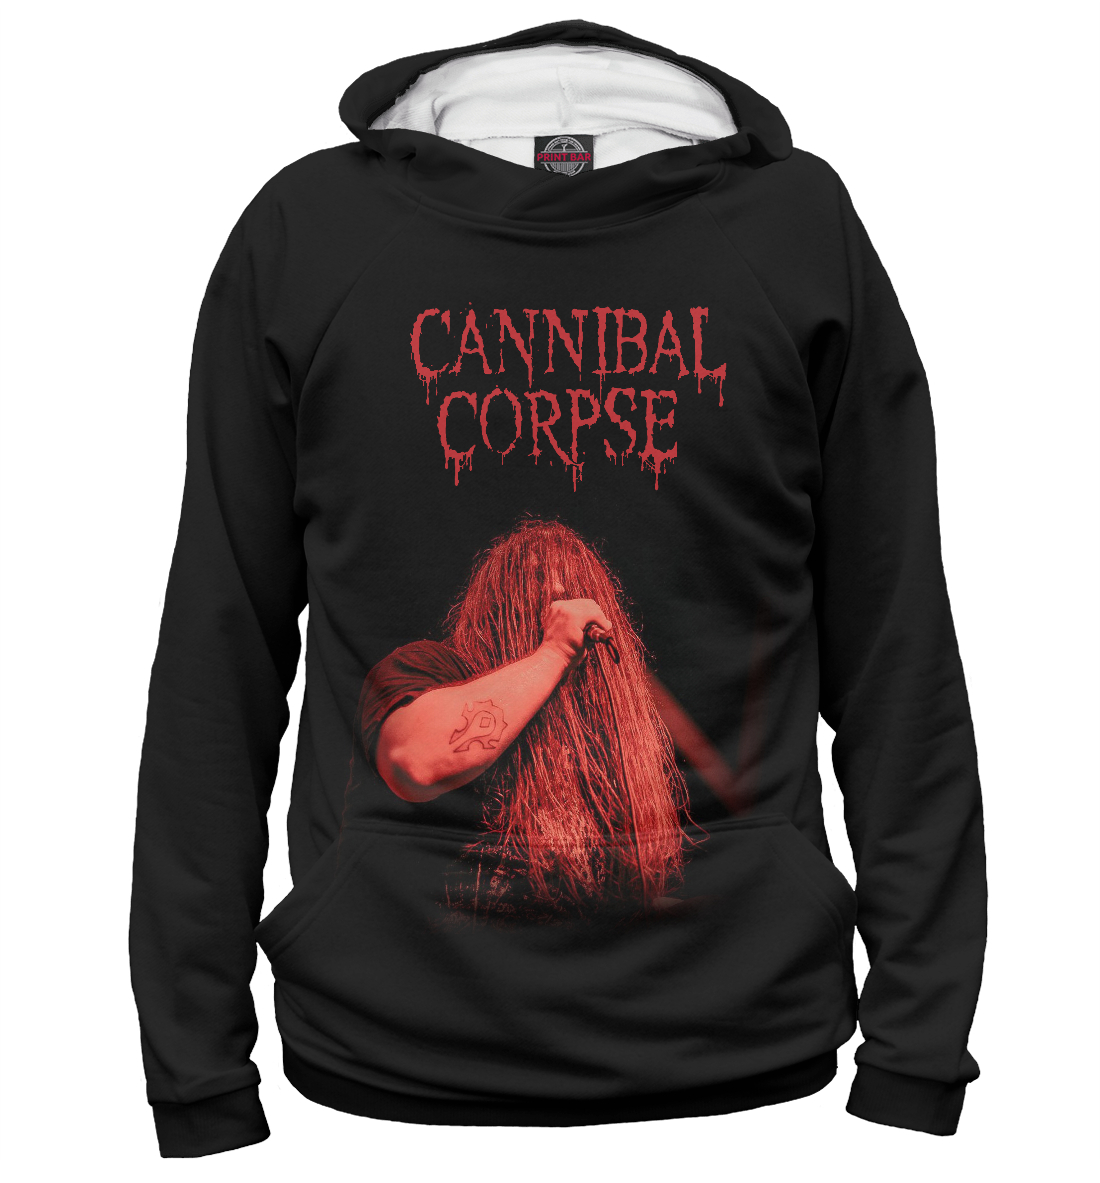 Купить George Fisher (Cannibal Corpse), Printbar, Худи, MZK-217329-hud-2